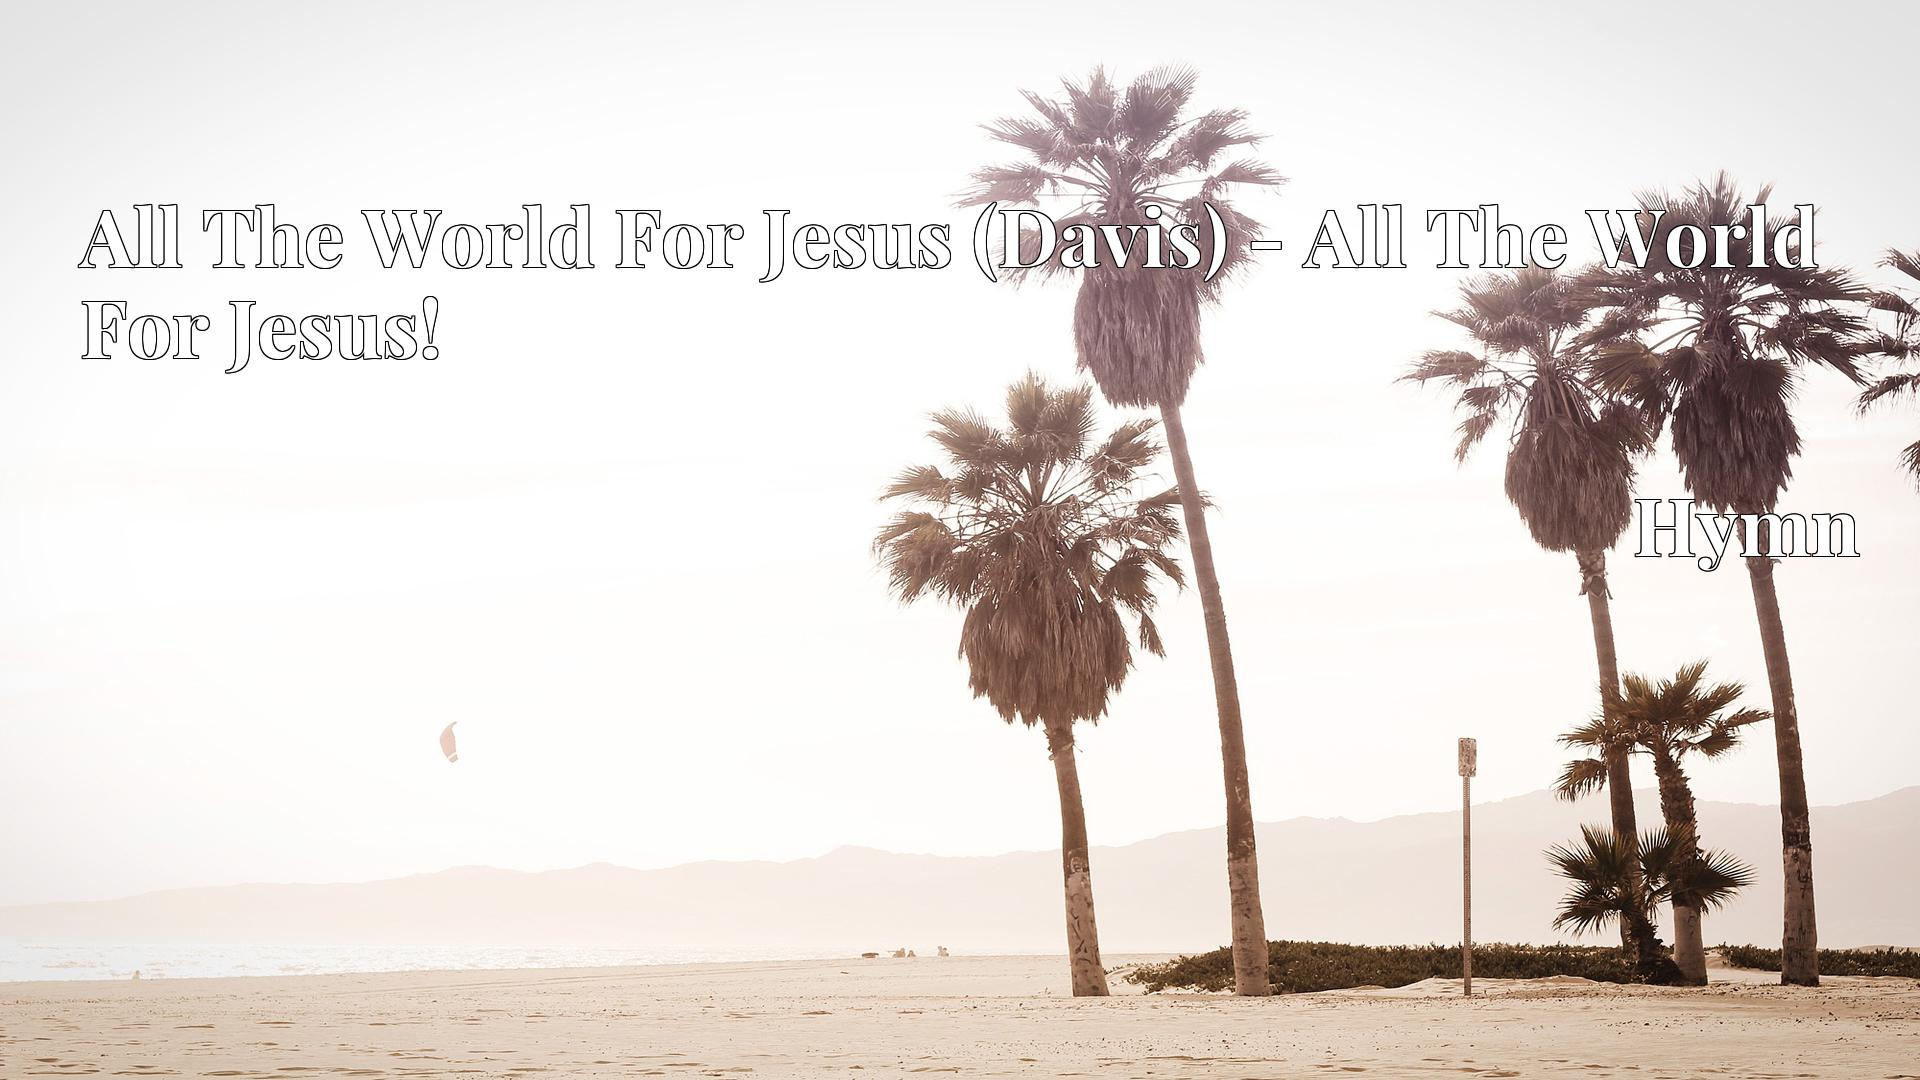 All The World For Jesus (Davis) - All The World For Jesus! - Hymn